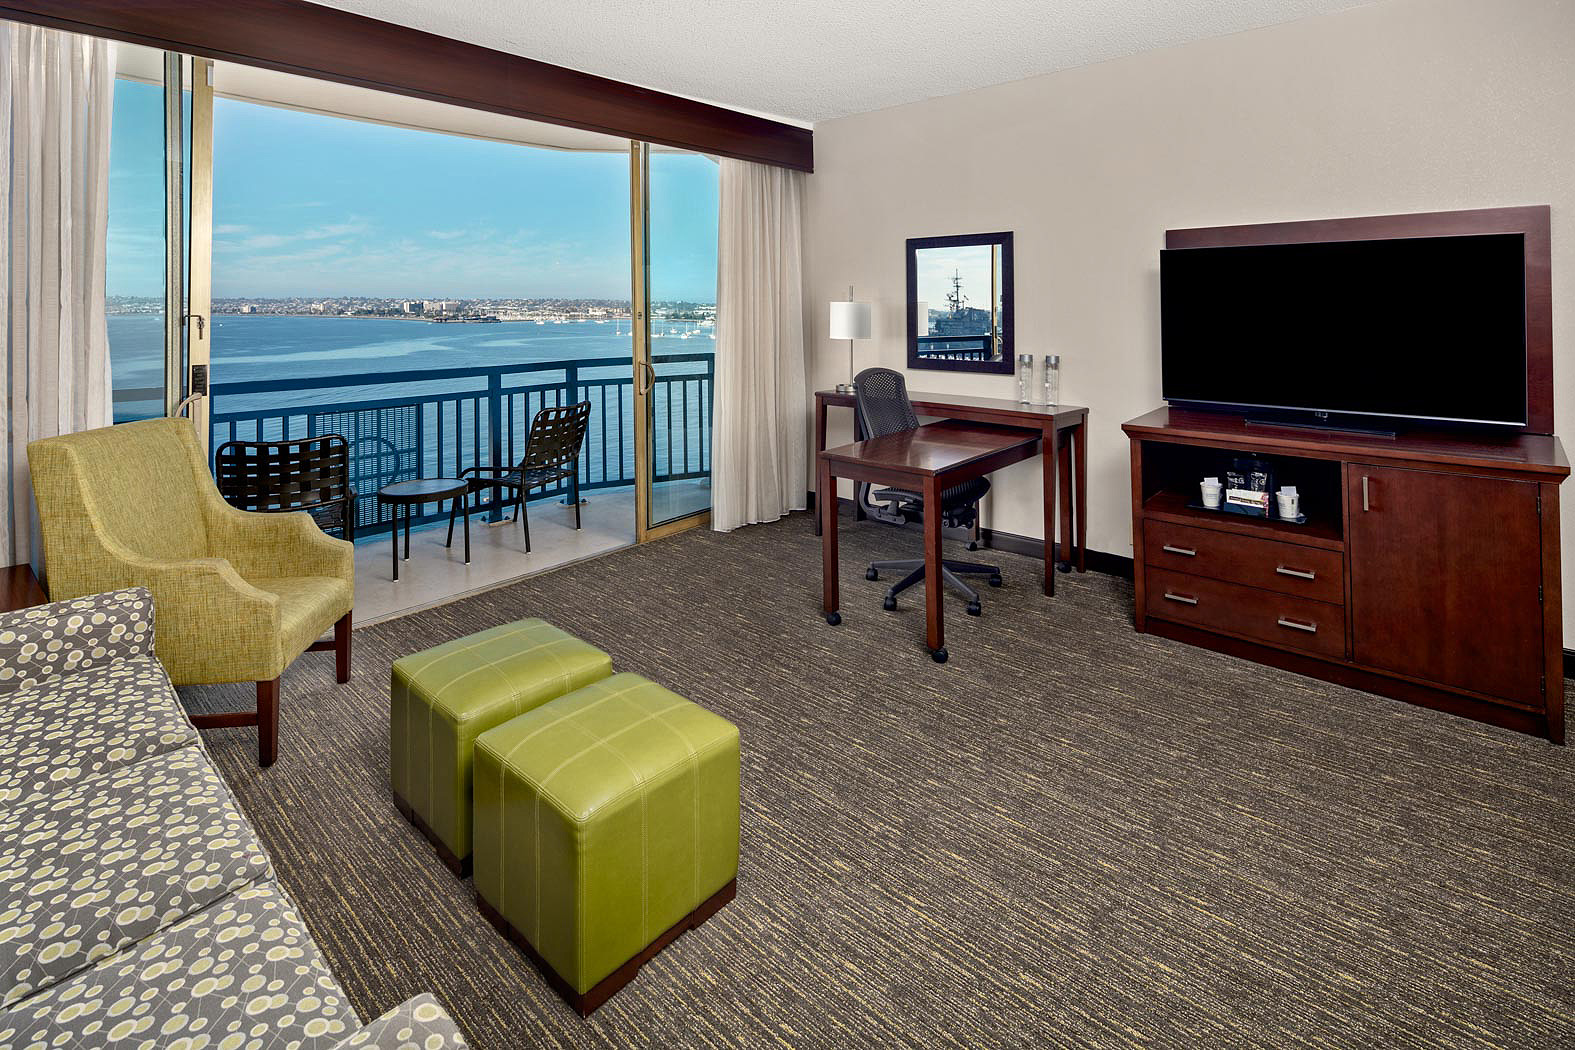 Guest room seating area with couch and chair with view to San Diego Bay